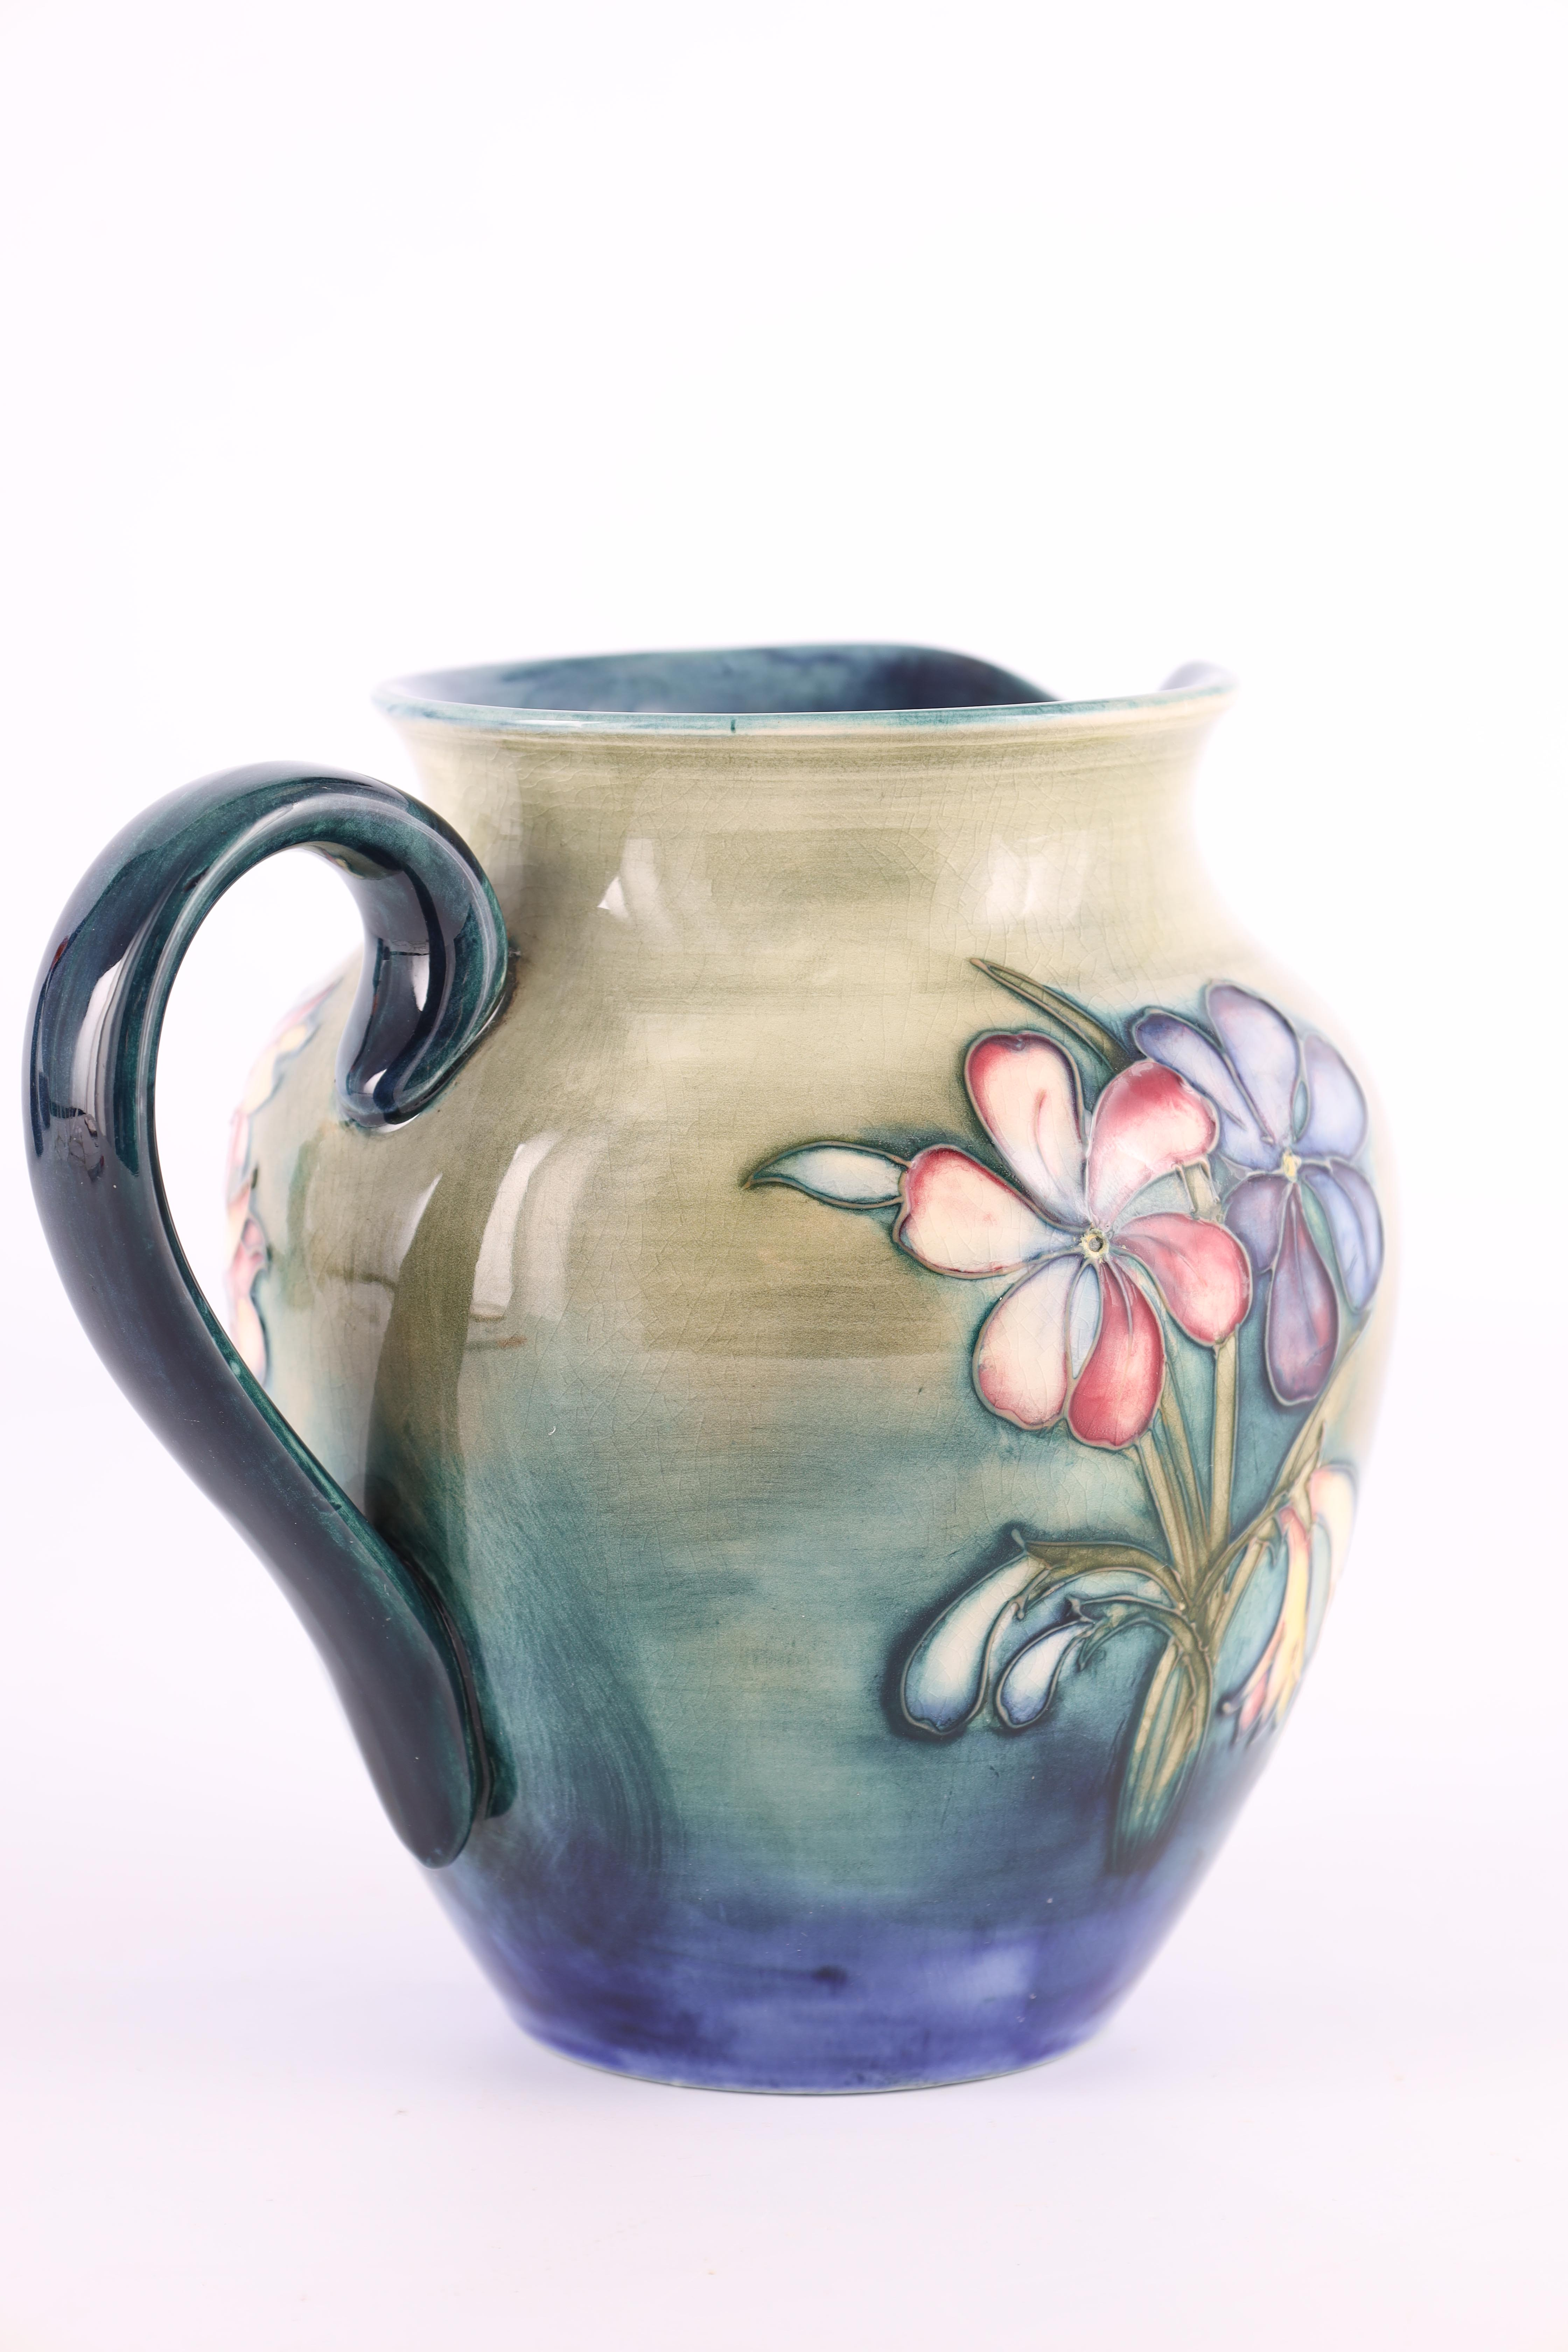 A MOORCROFT SHOULDERED TAPERING JUG tube lined and decorated in the spring flowers pattern on a - Image 5 of 6